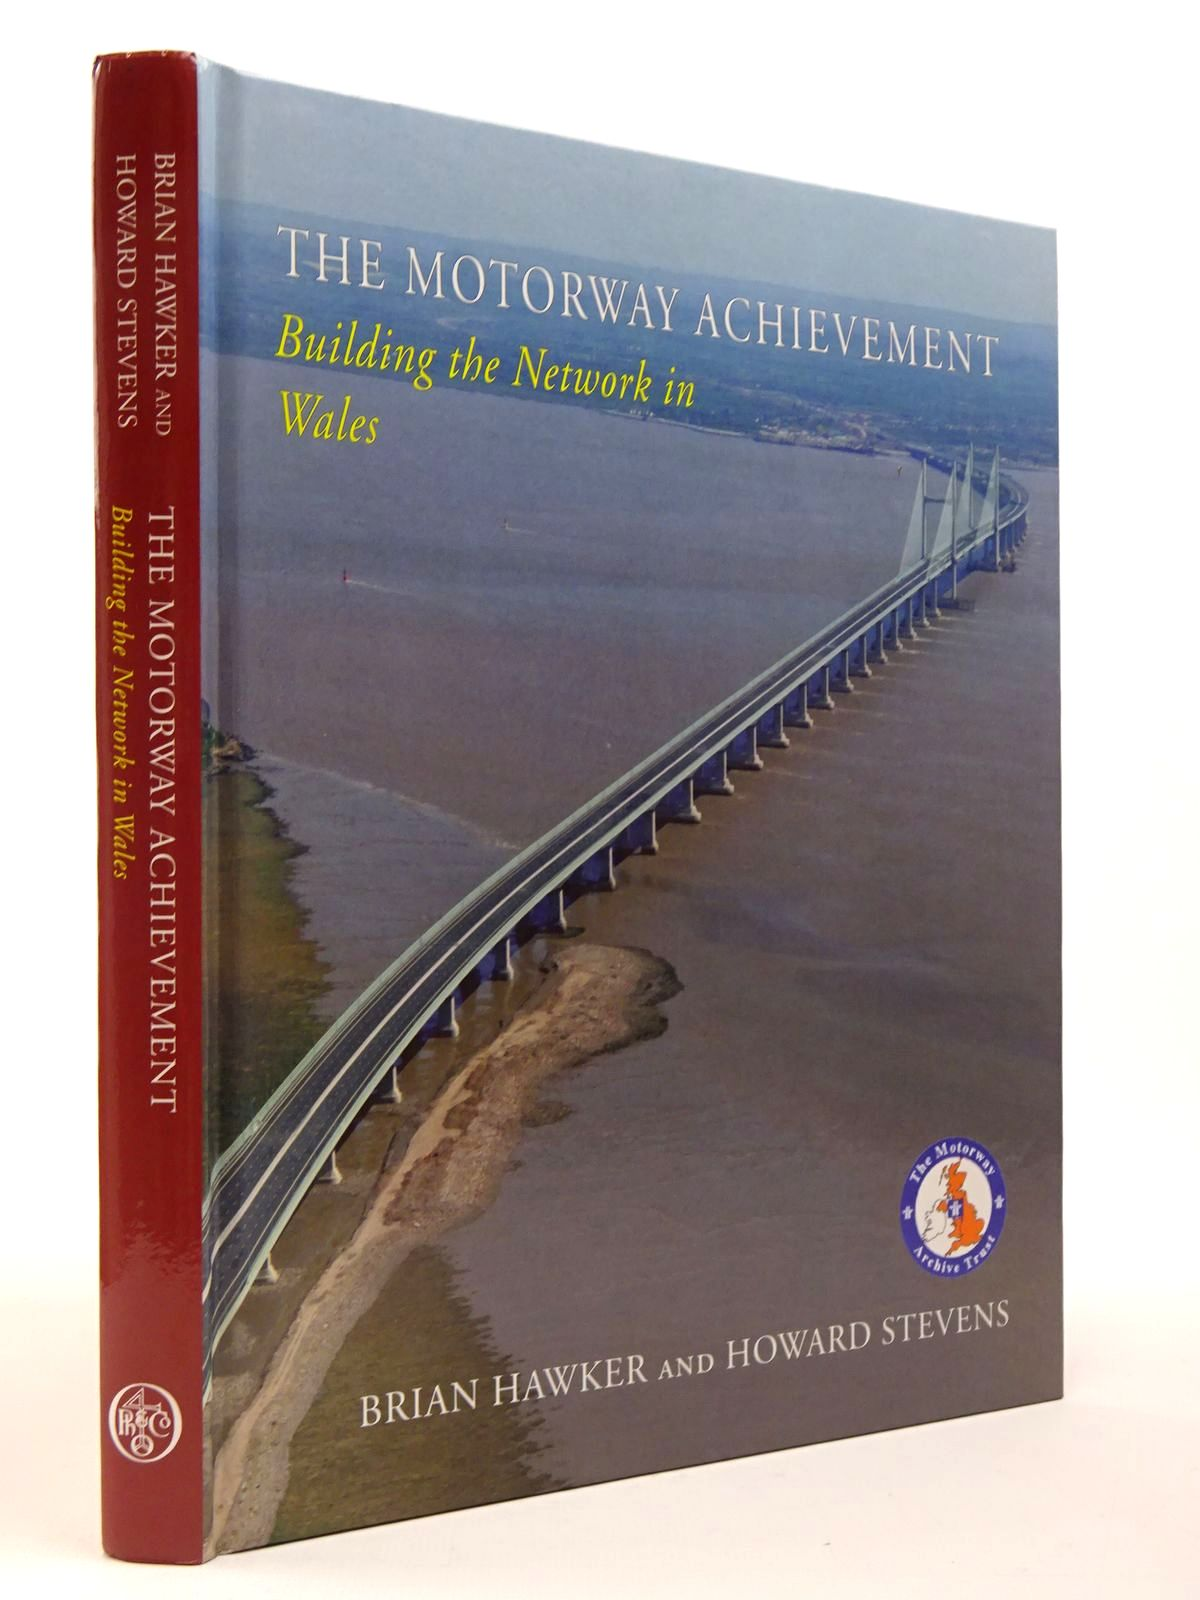 Photo of THE MOTORWAY ACHIEVEMENT BUILDING THE NETWORK: WALES written by Hawker, Brian Stevens, Howard published by Phillimore (STOCK CODE: 2129771)  for sale by Stella & Rose's Books